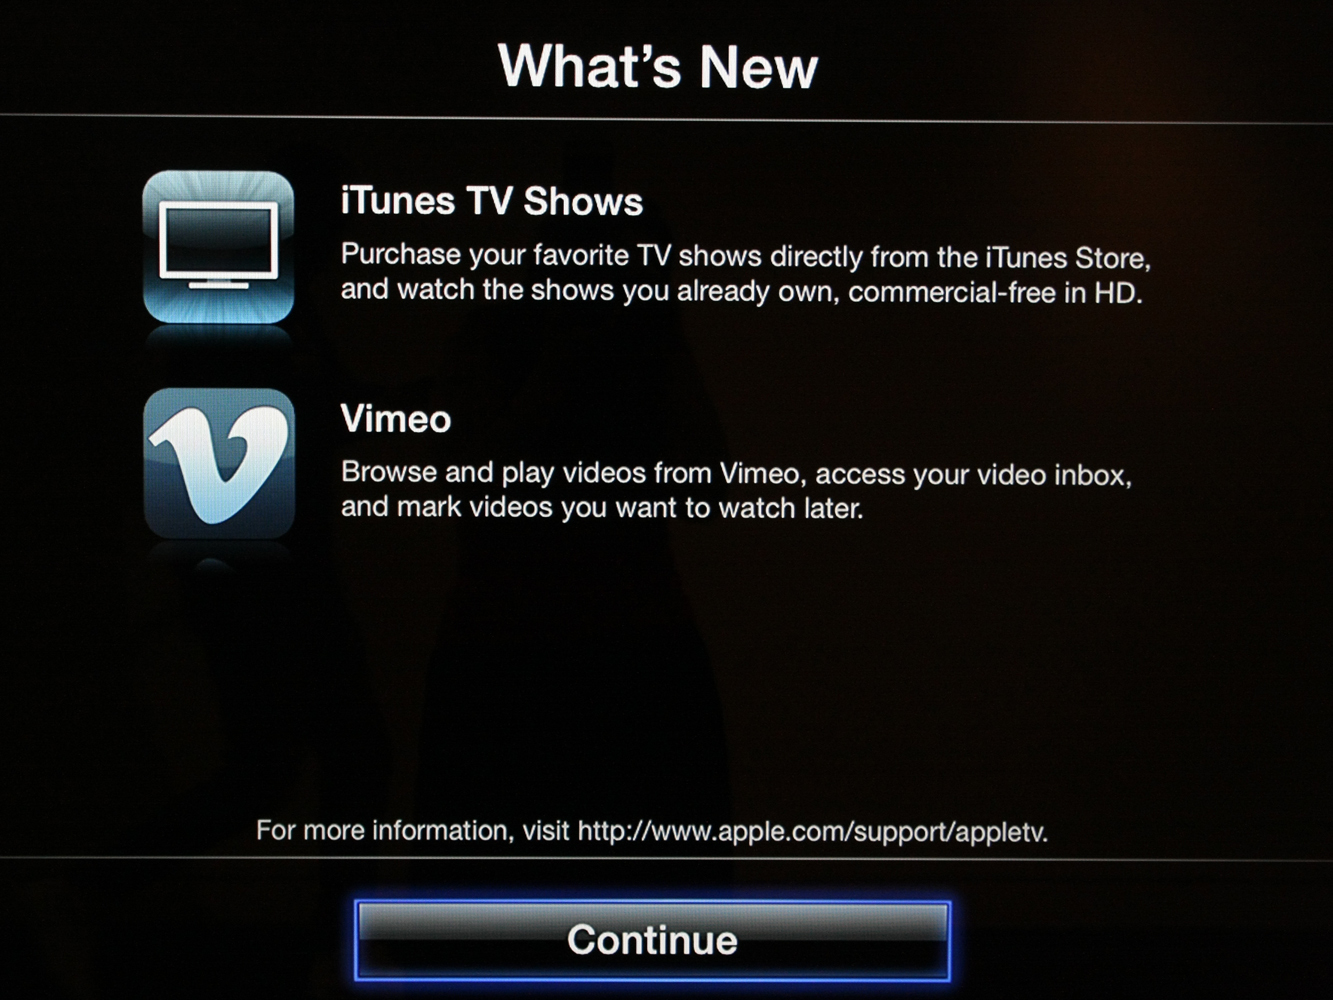 Apple TV's now serving up TV show buying and watching of purchased TV show content as part of a new update.